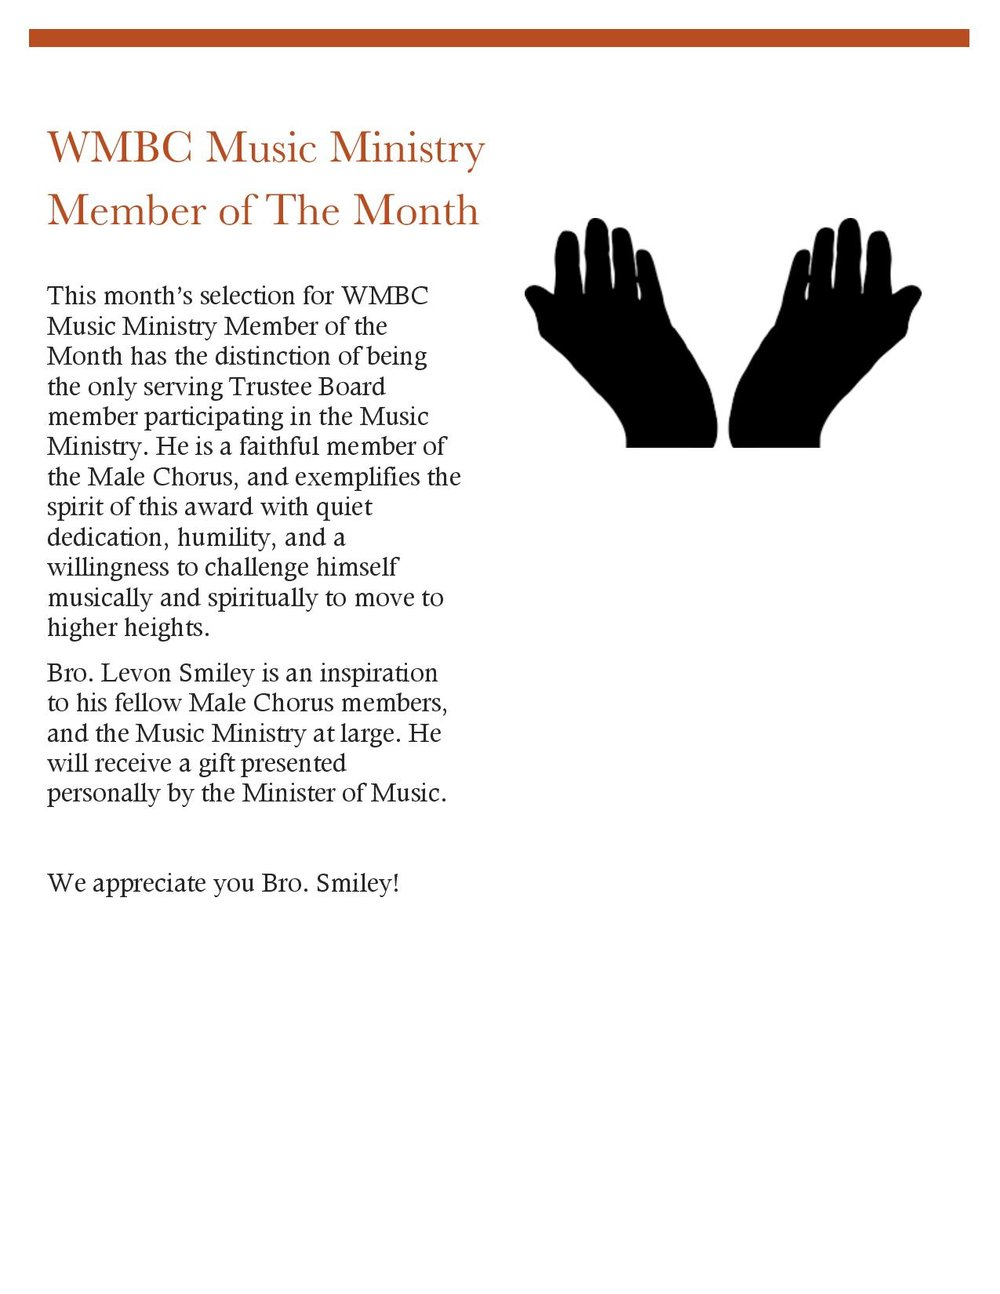 WMBC Music Ministry Newsletter July 2017  -1-page-004.jpg